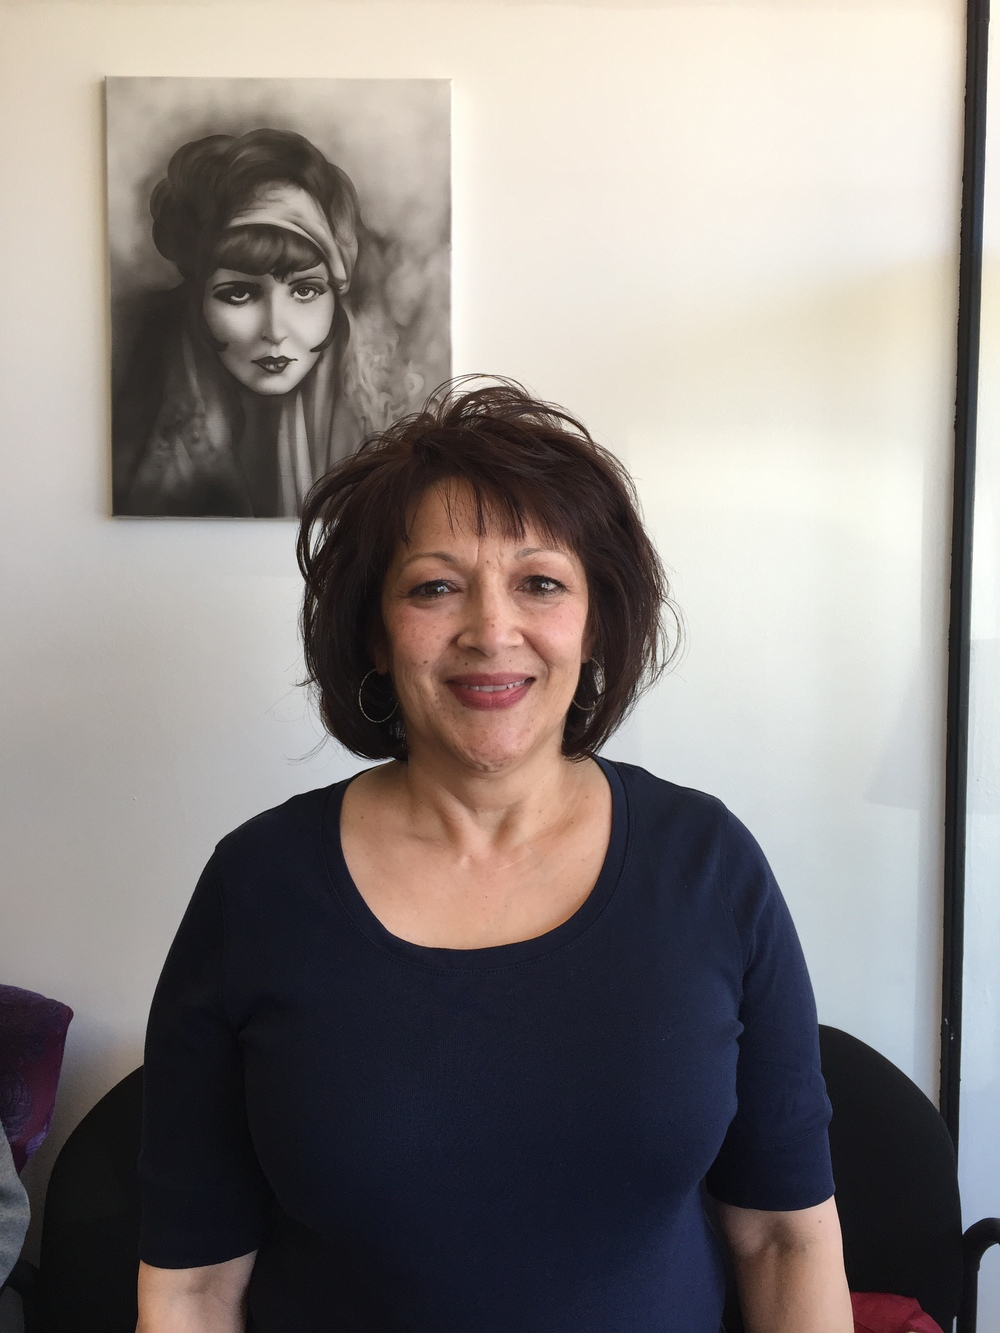 """""""This is my aunt and for her birthday I gave her a make over at the IT FACTOR. What a hit!So thankful for the time and work Iris spent on making my aunt feel beautiful. Best Gift ever! Thanks again Iris! Diana Ballaro, April 2015"""